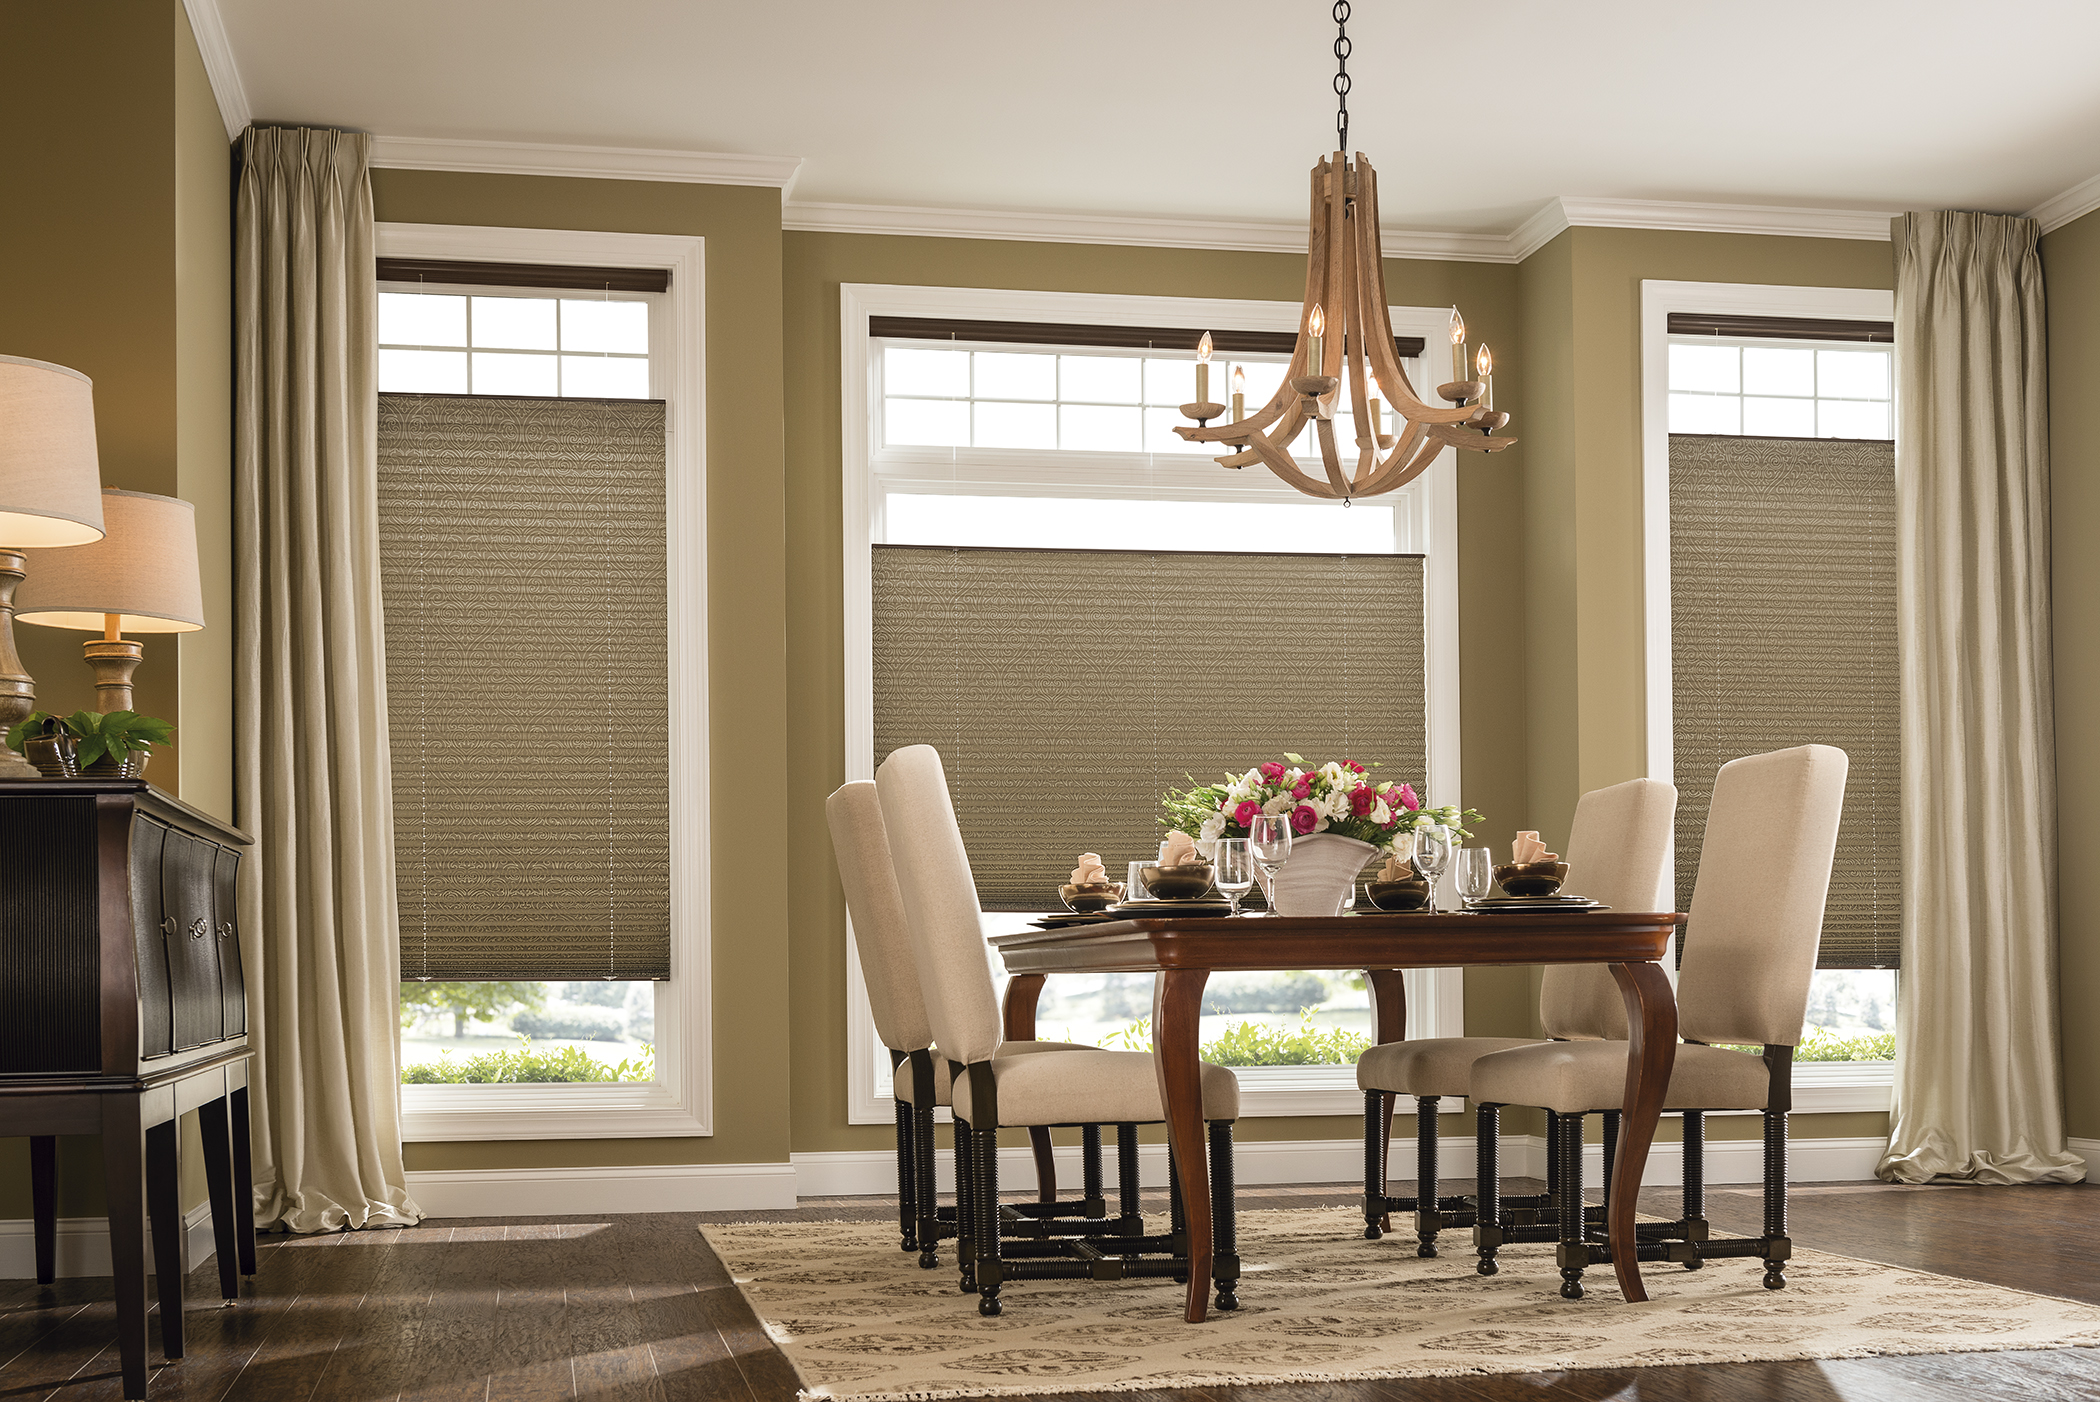 Pleated Blinds in Dining Room